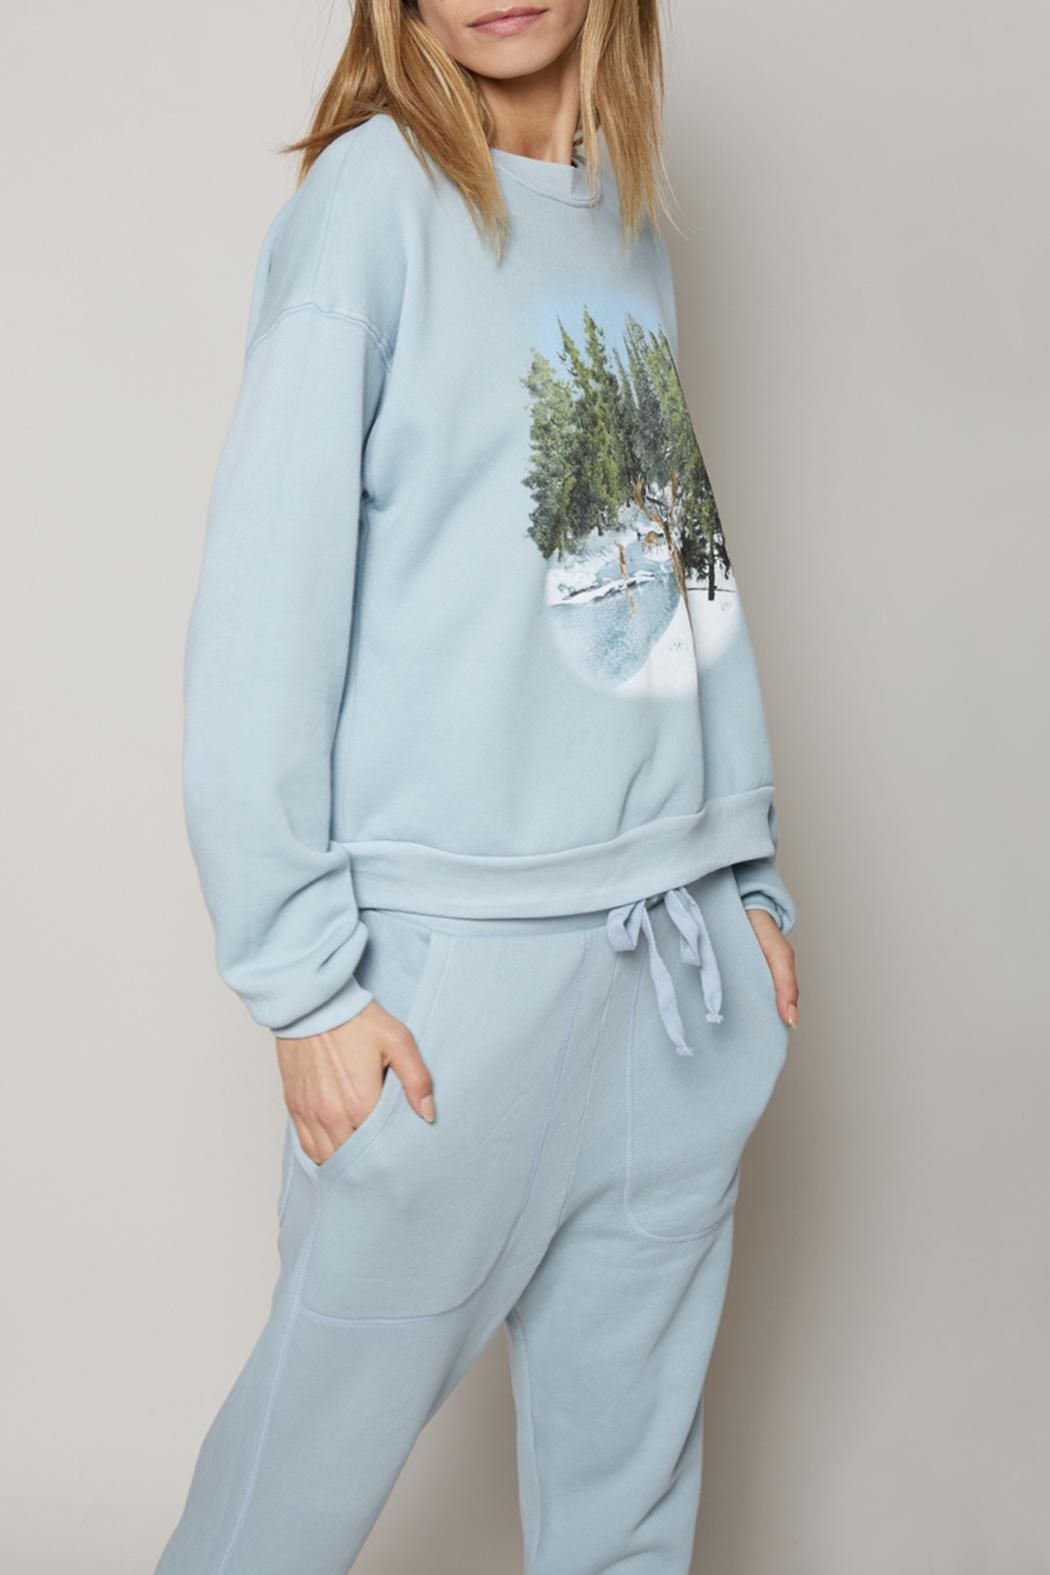 All Things Fabulous Deer Valley Sweatshirt - Side Cropped Image